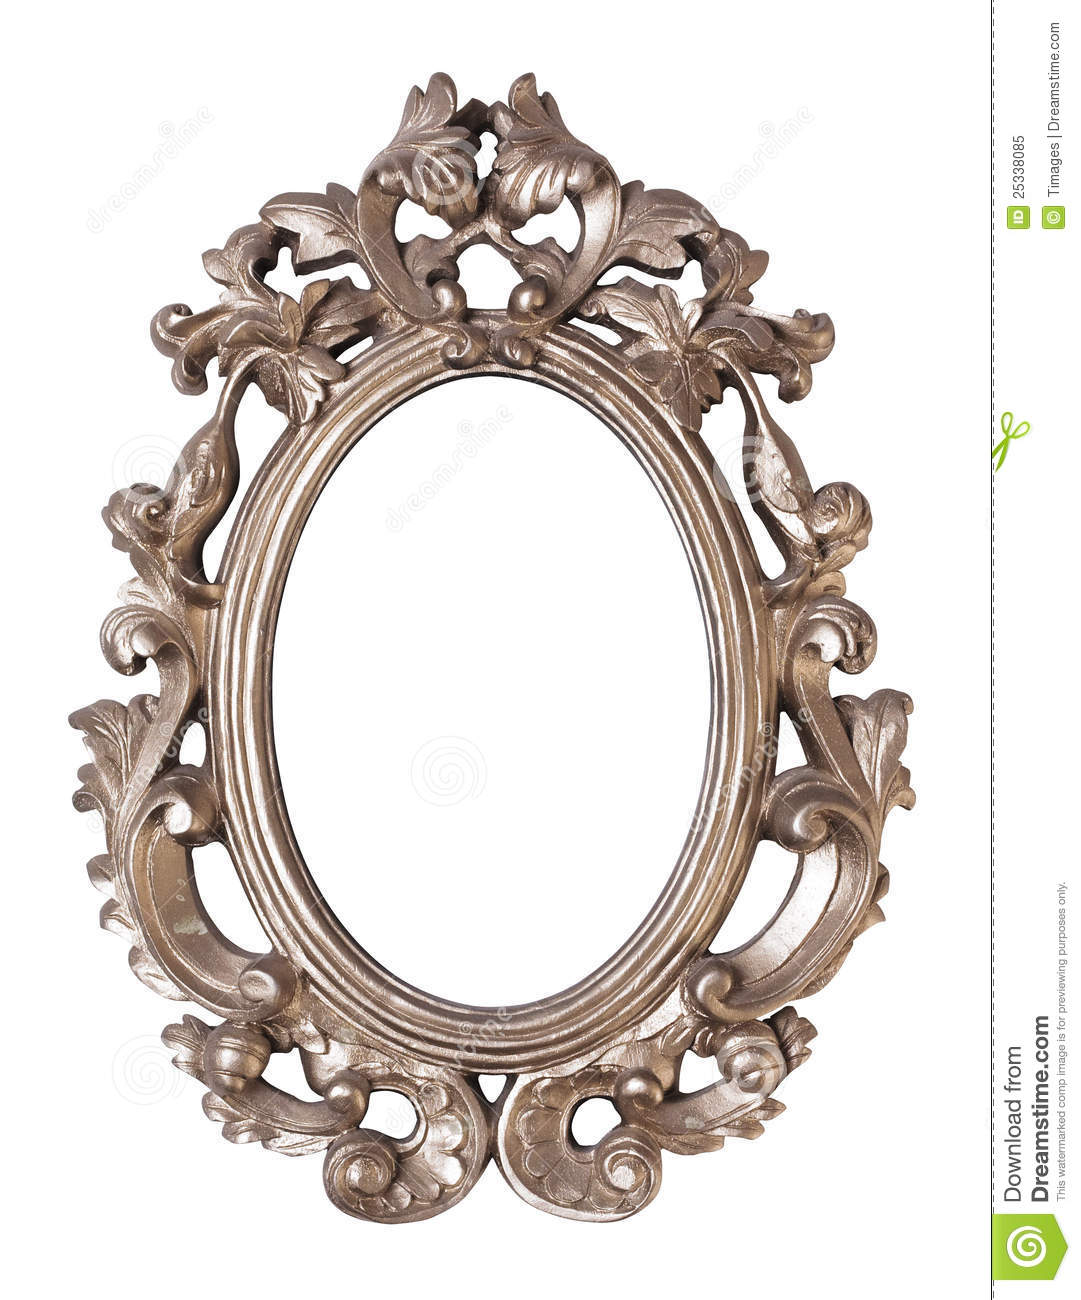 Ornate oval picture frame stock image. Image of baroque - 25338085